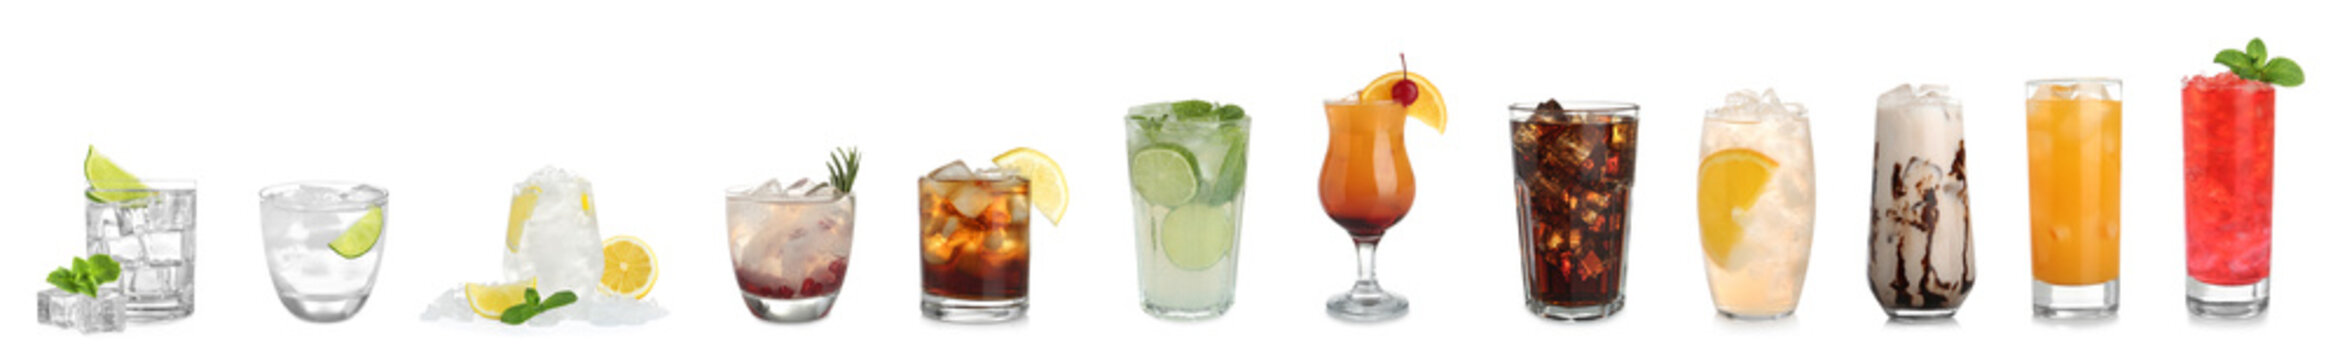 Set of different delicious cocktails with ice cubes on white background. Banner design